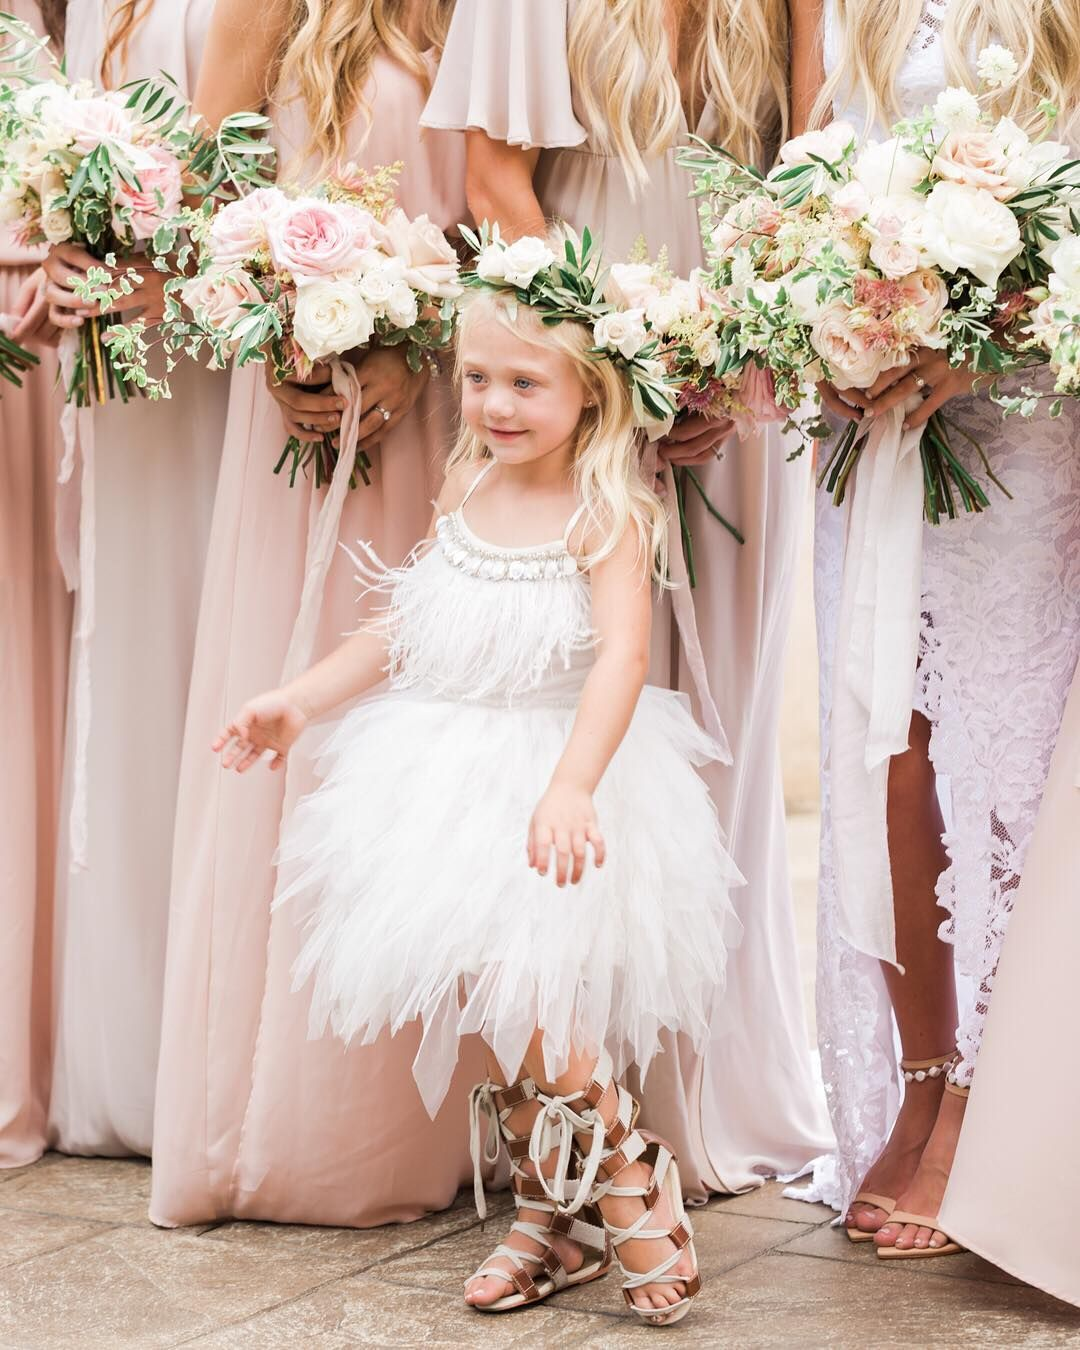 The cutest little flower girl we ever did see everleighrose the cutest little flower girl we ever did see everleighrose mumuweddings ombrellifo Image collections